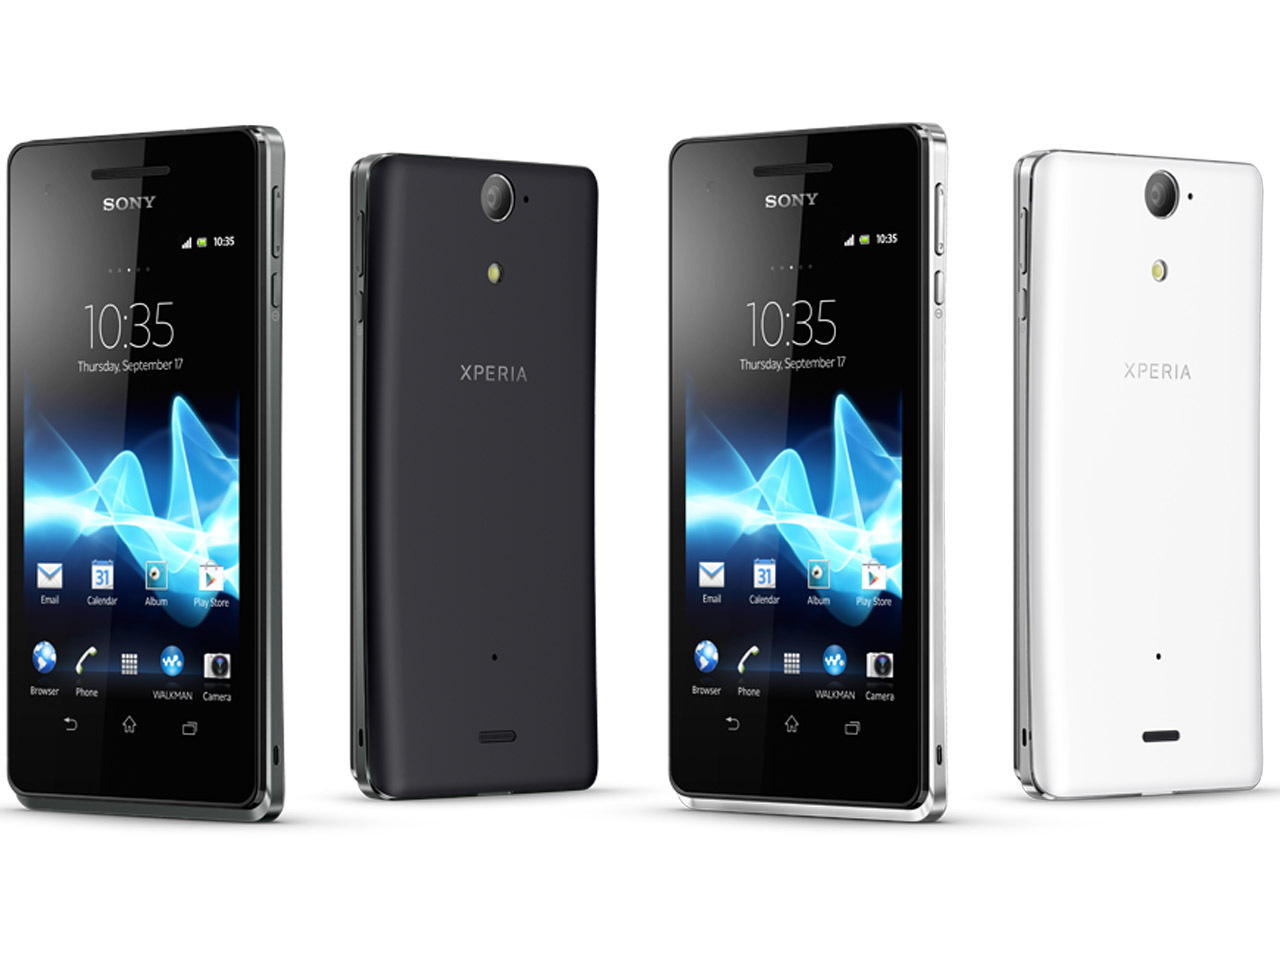 Sony Xperia V in the Test